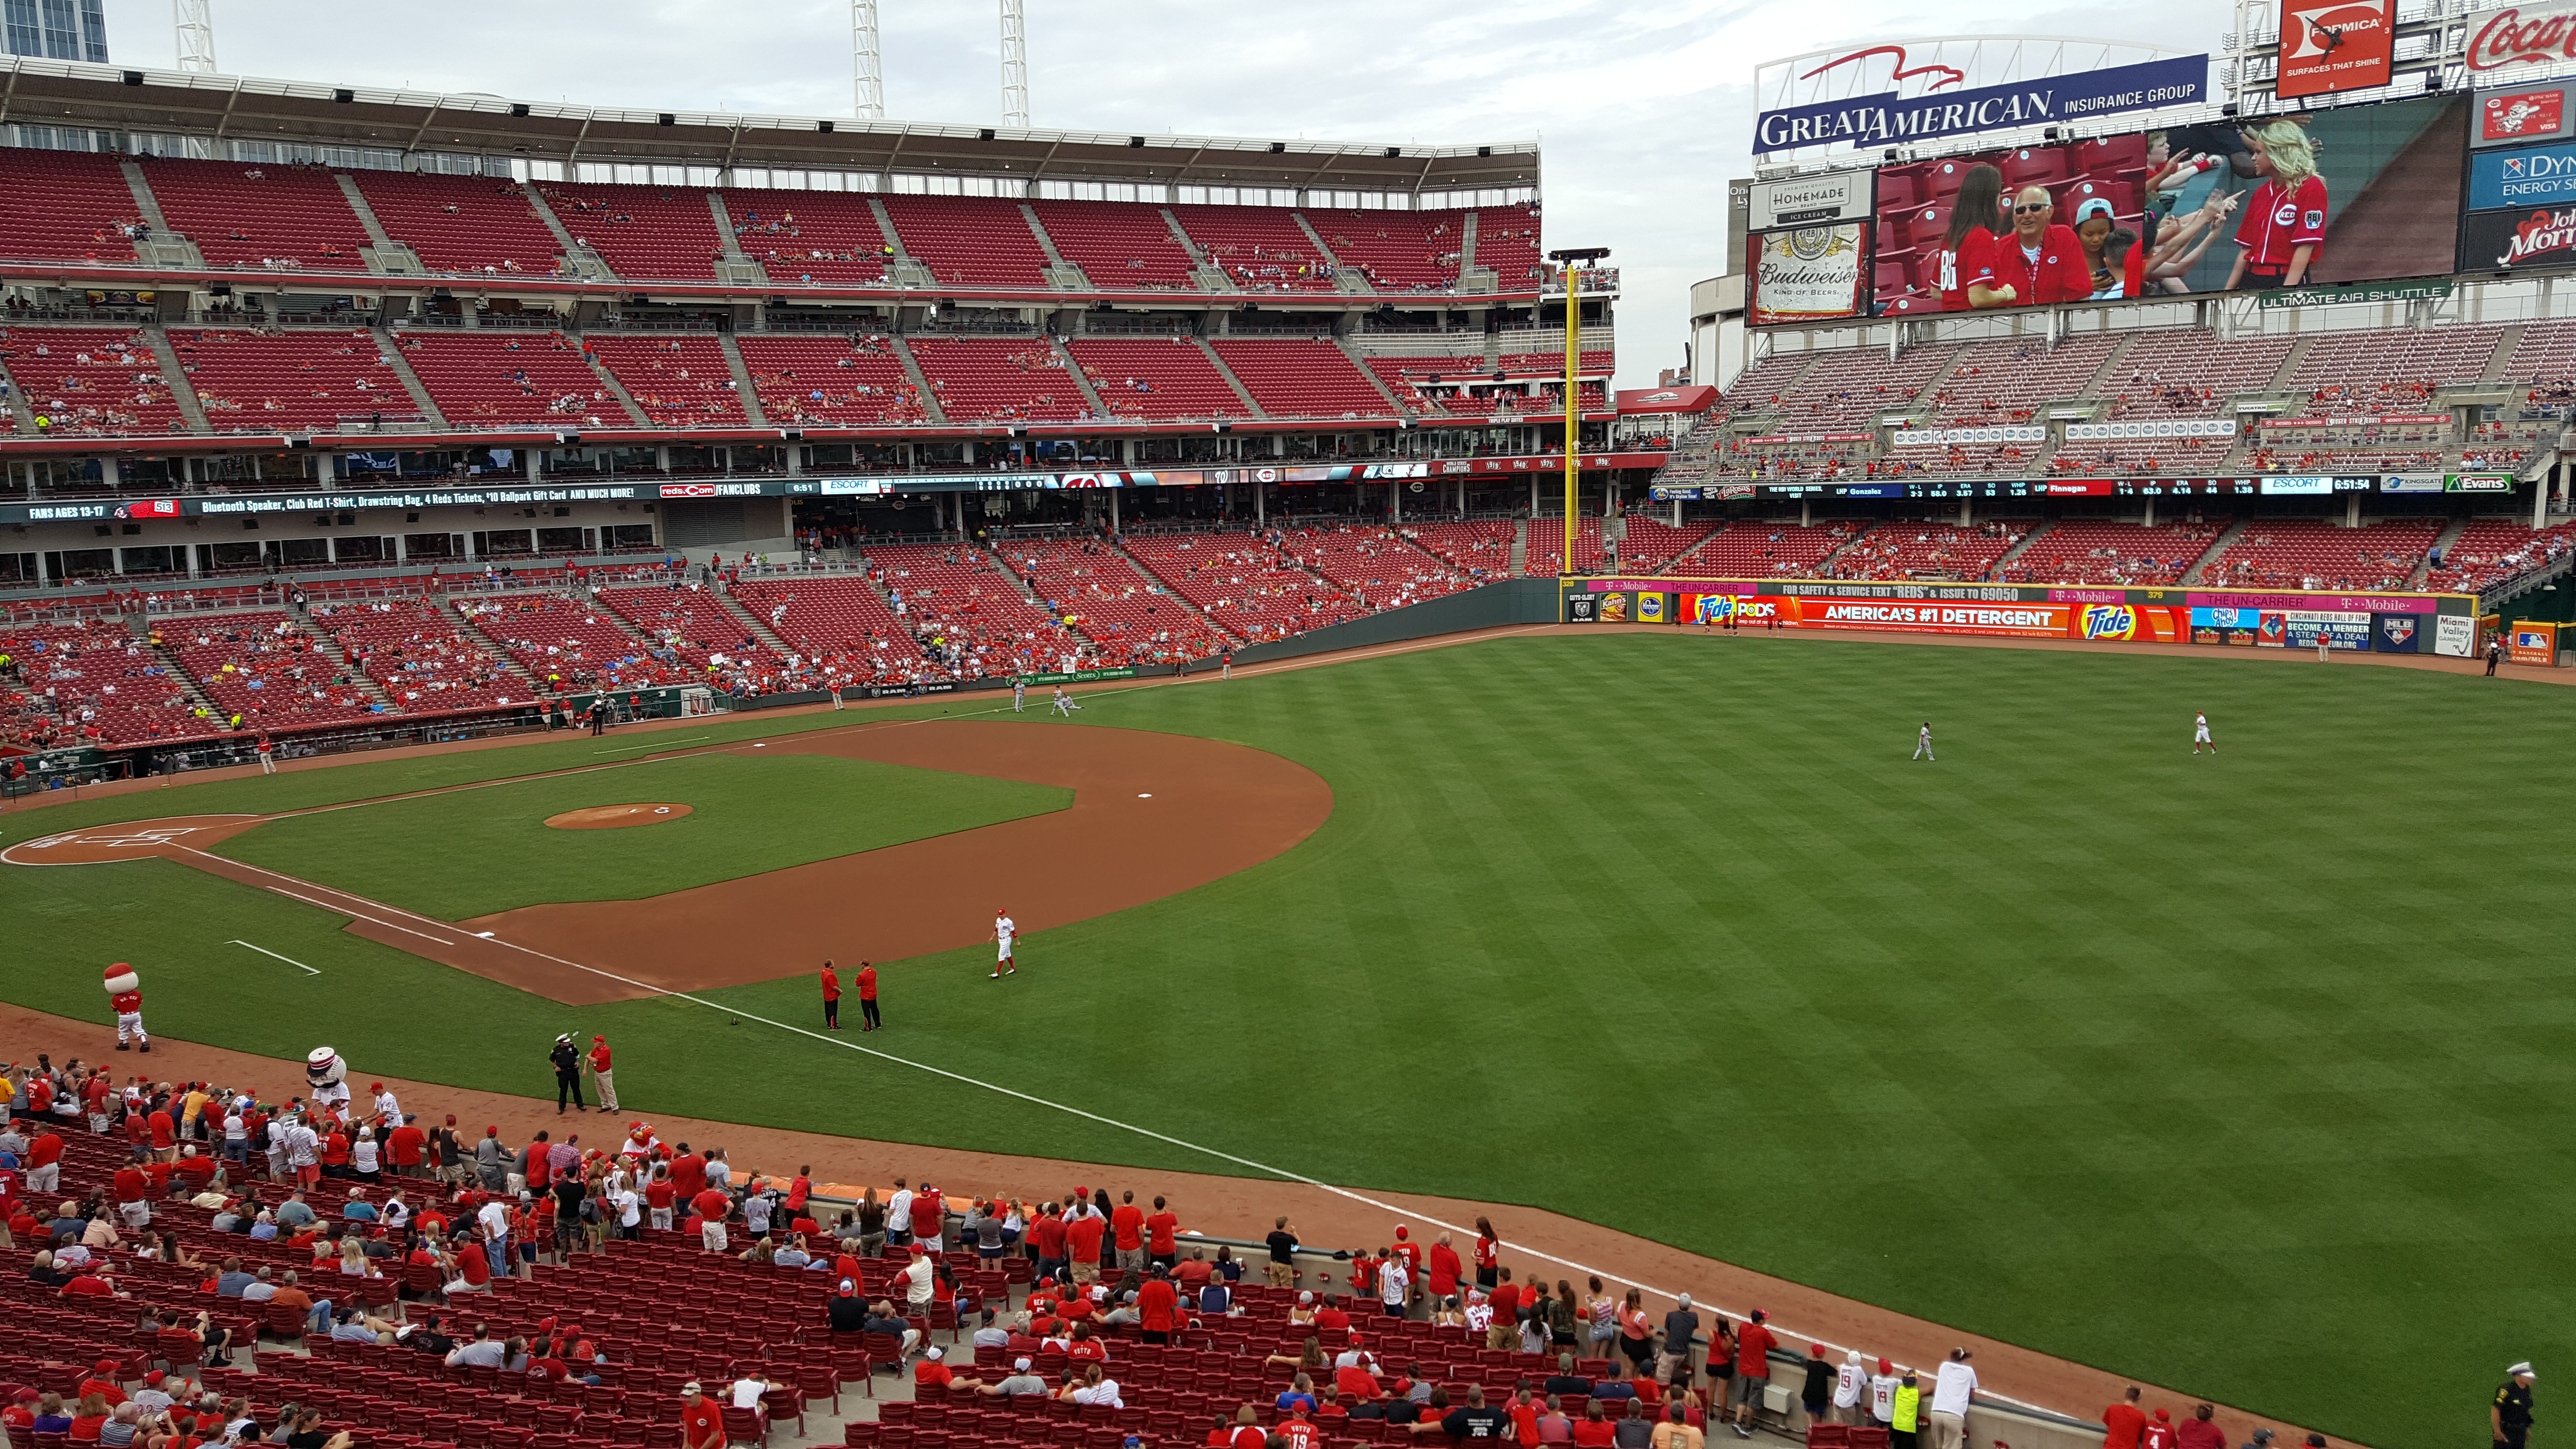 2016 Reds Game